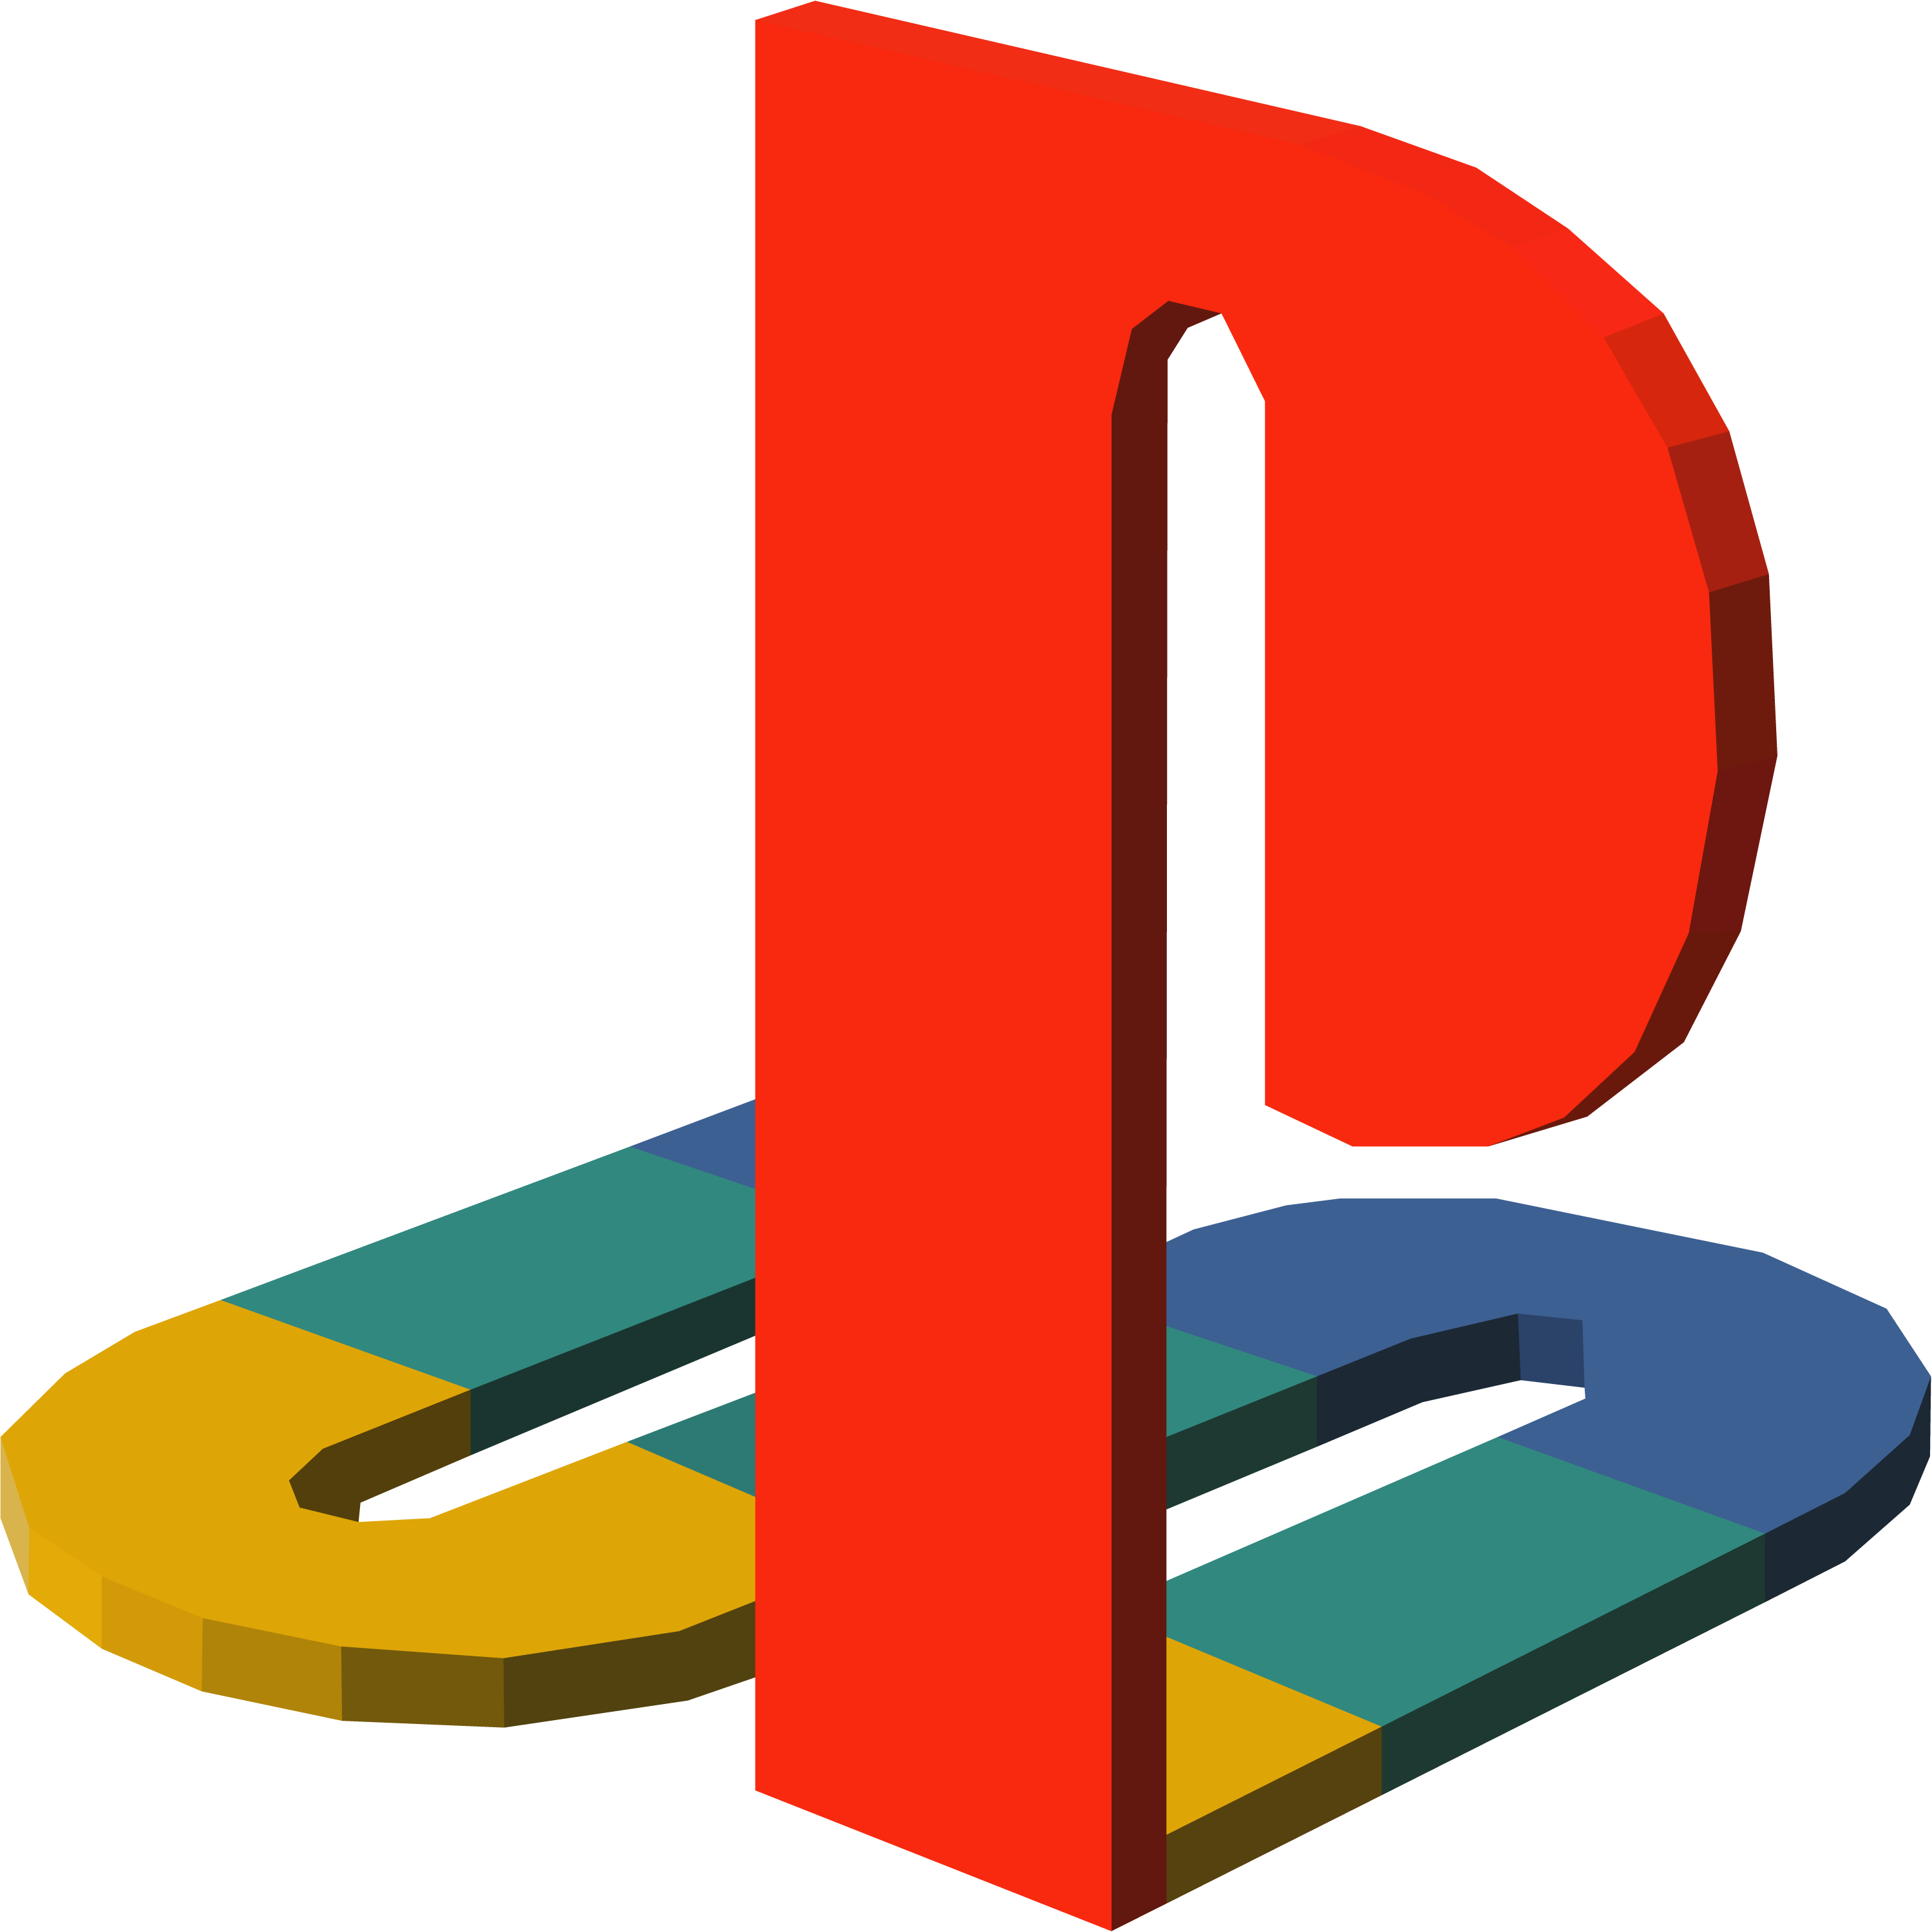 Download Png Image   Playstation Png Png Picture - Playstation, Transparent background PNG HD thumbnail